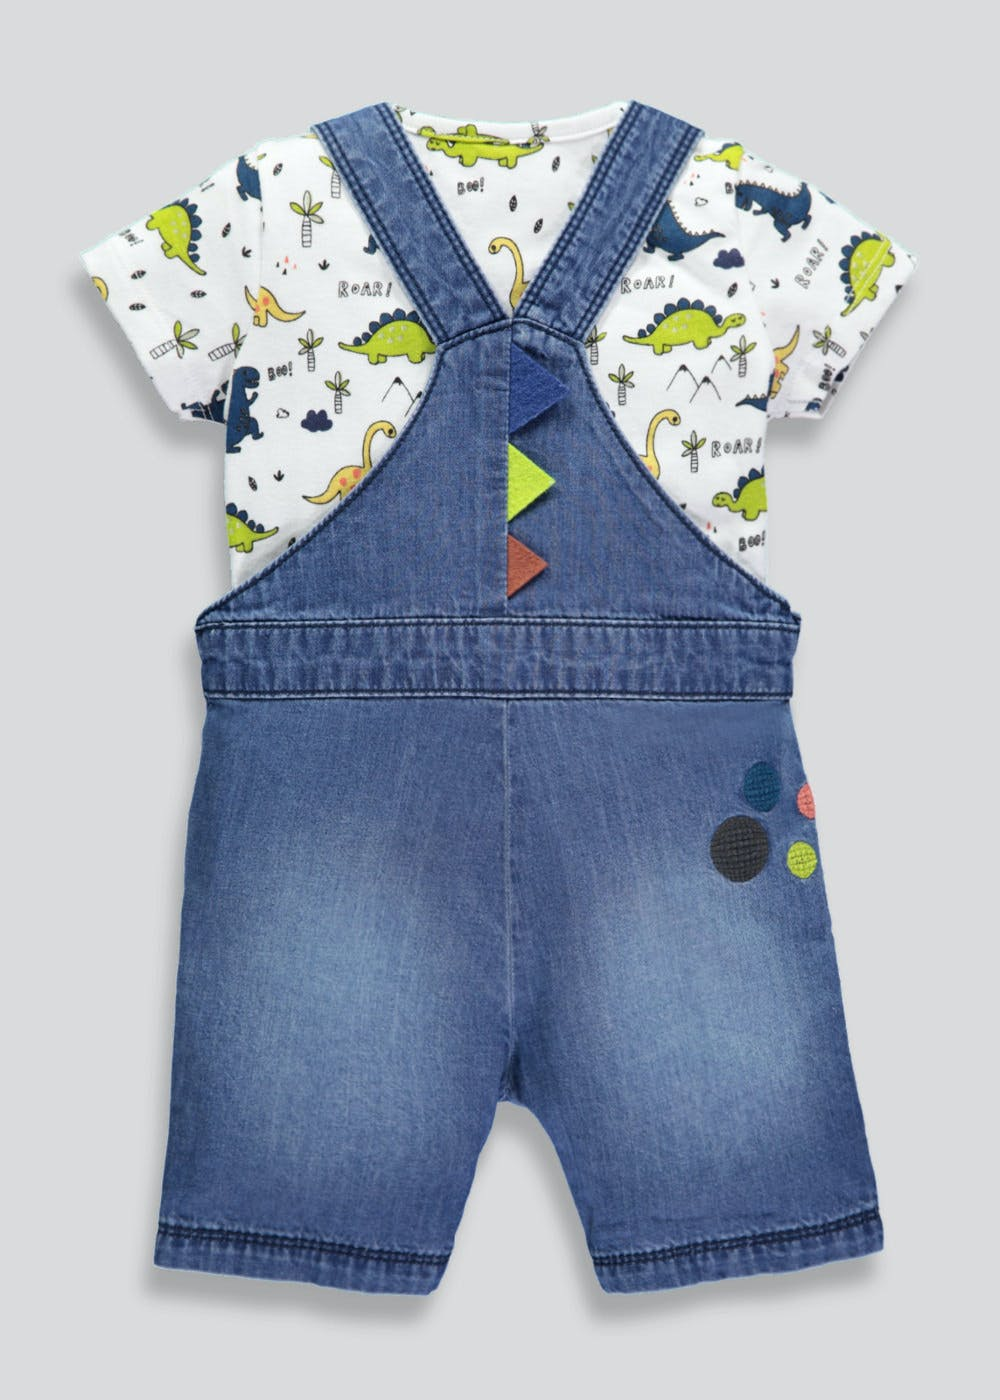 dc40f3c73aee Boys Dinosaur Denim Dungaree   Top Set (Newborn-18mths) – – Matalan